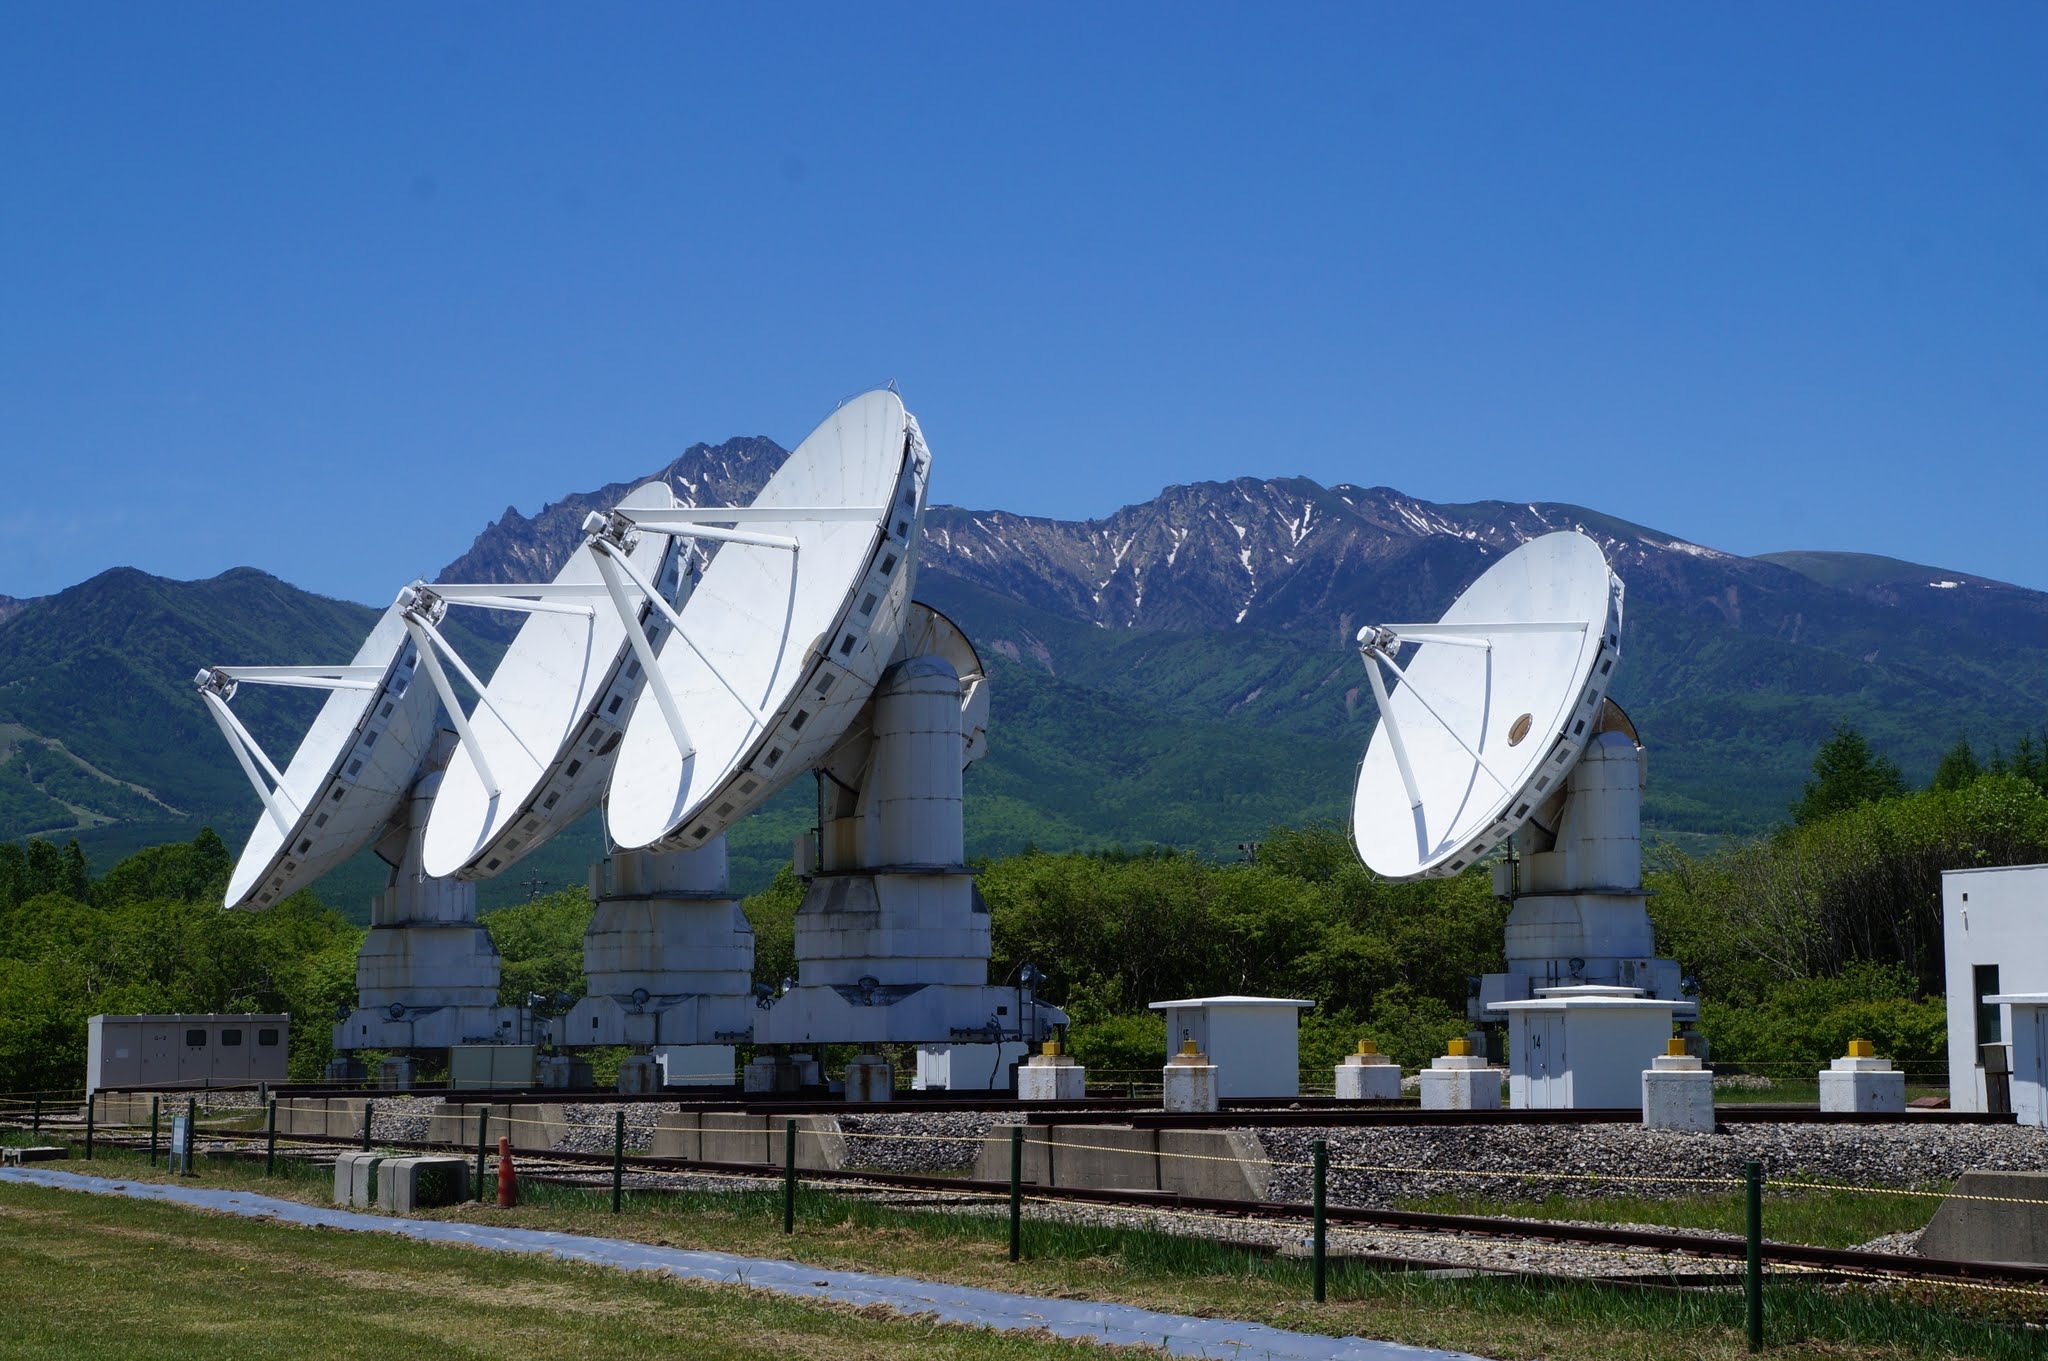 Array of radiotelescopes in front of a mountain